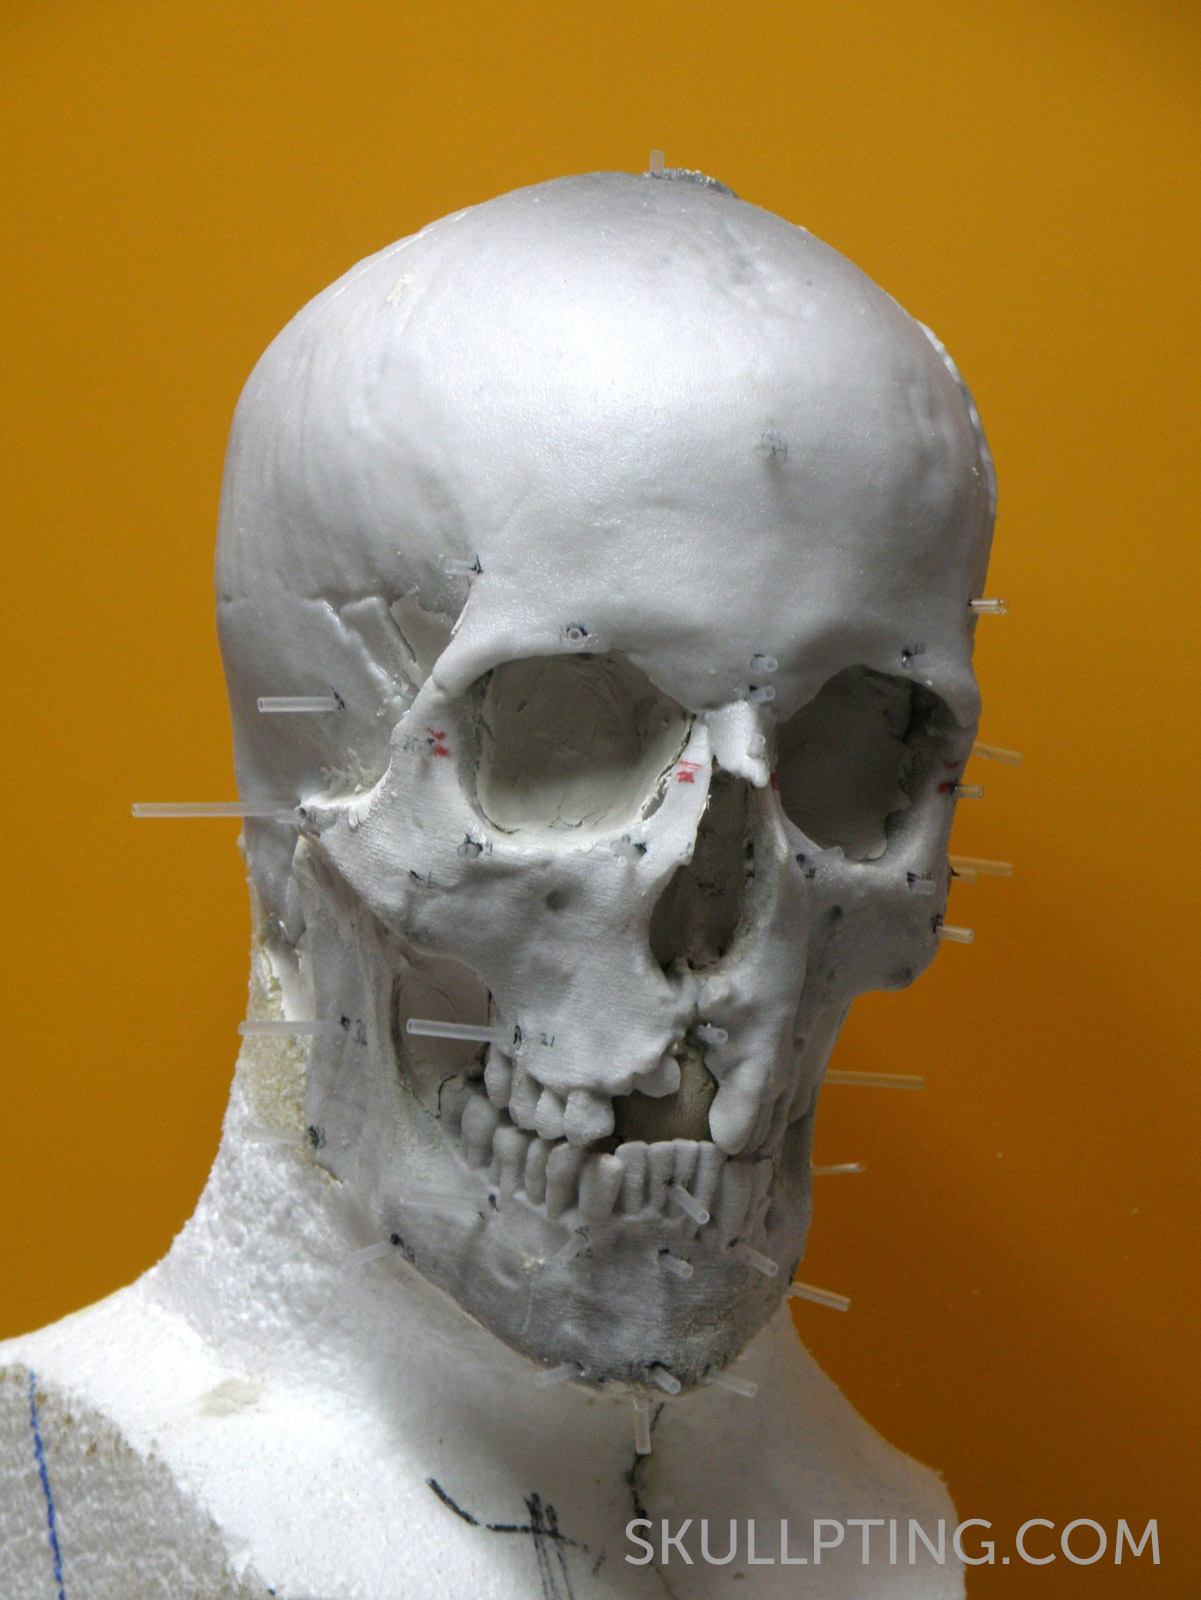 Copy of the skull